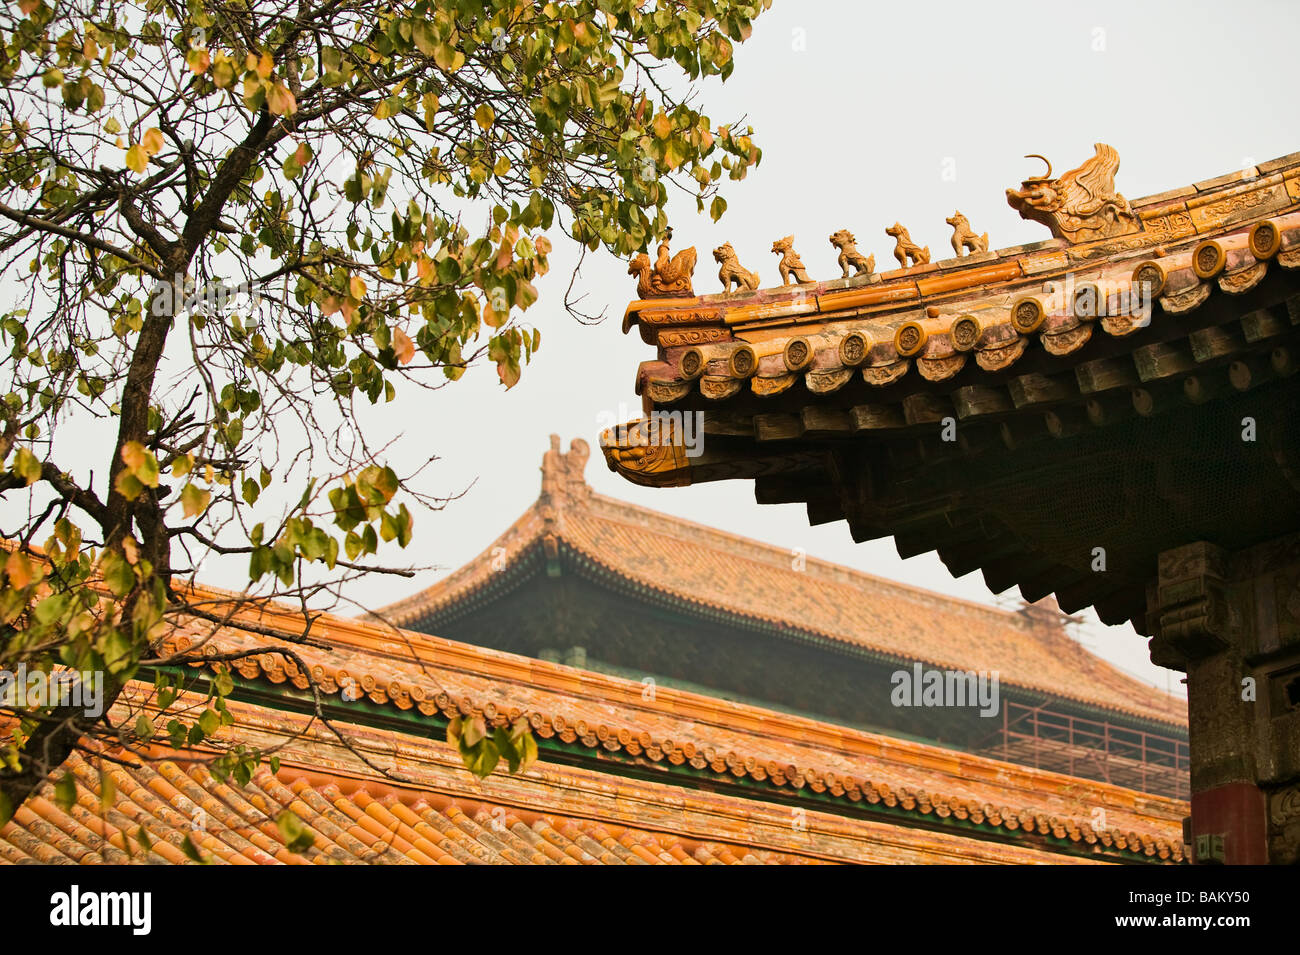 Roofs in forbidden city beijing - Stock Image